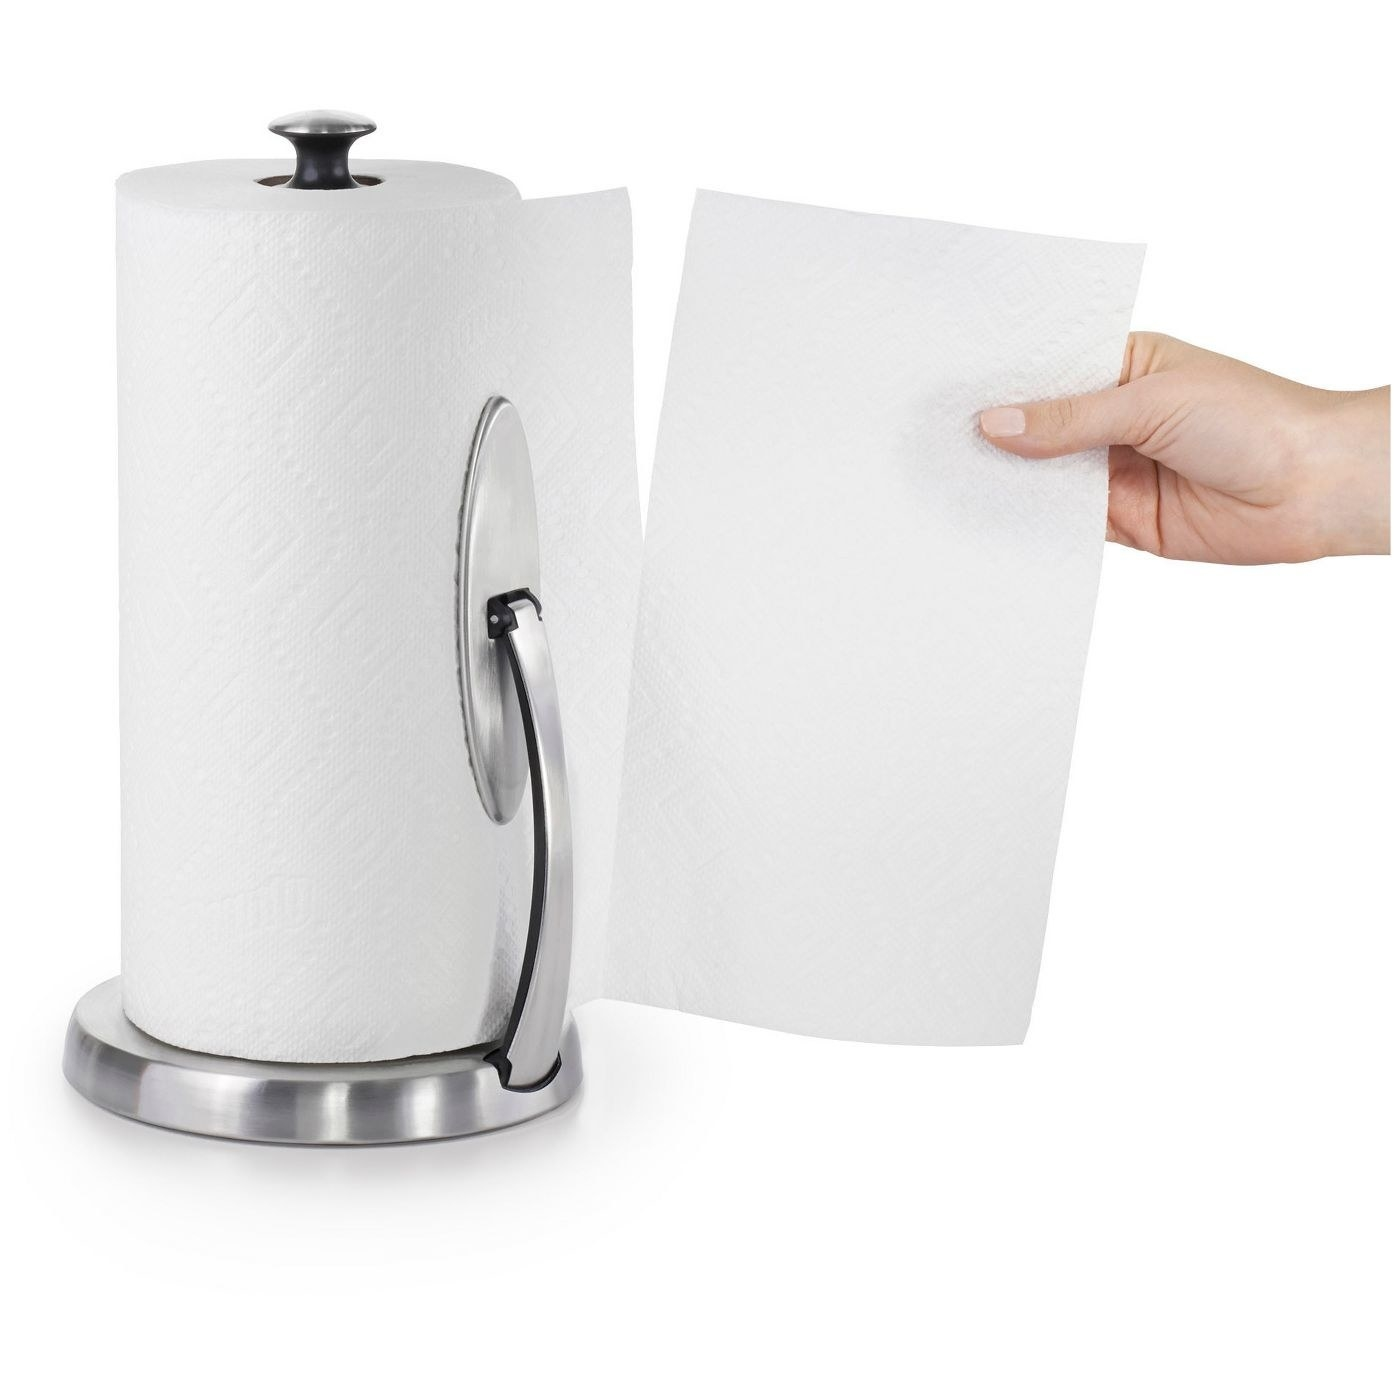 The paper towel holder